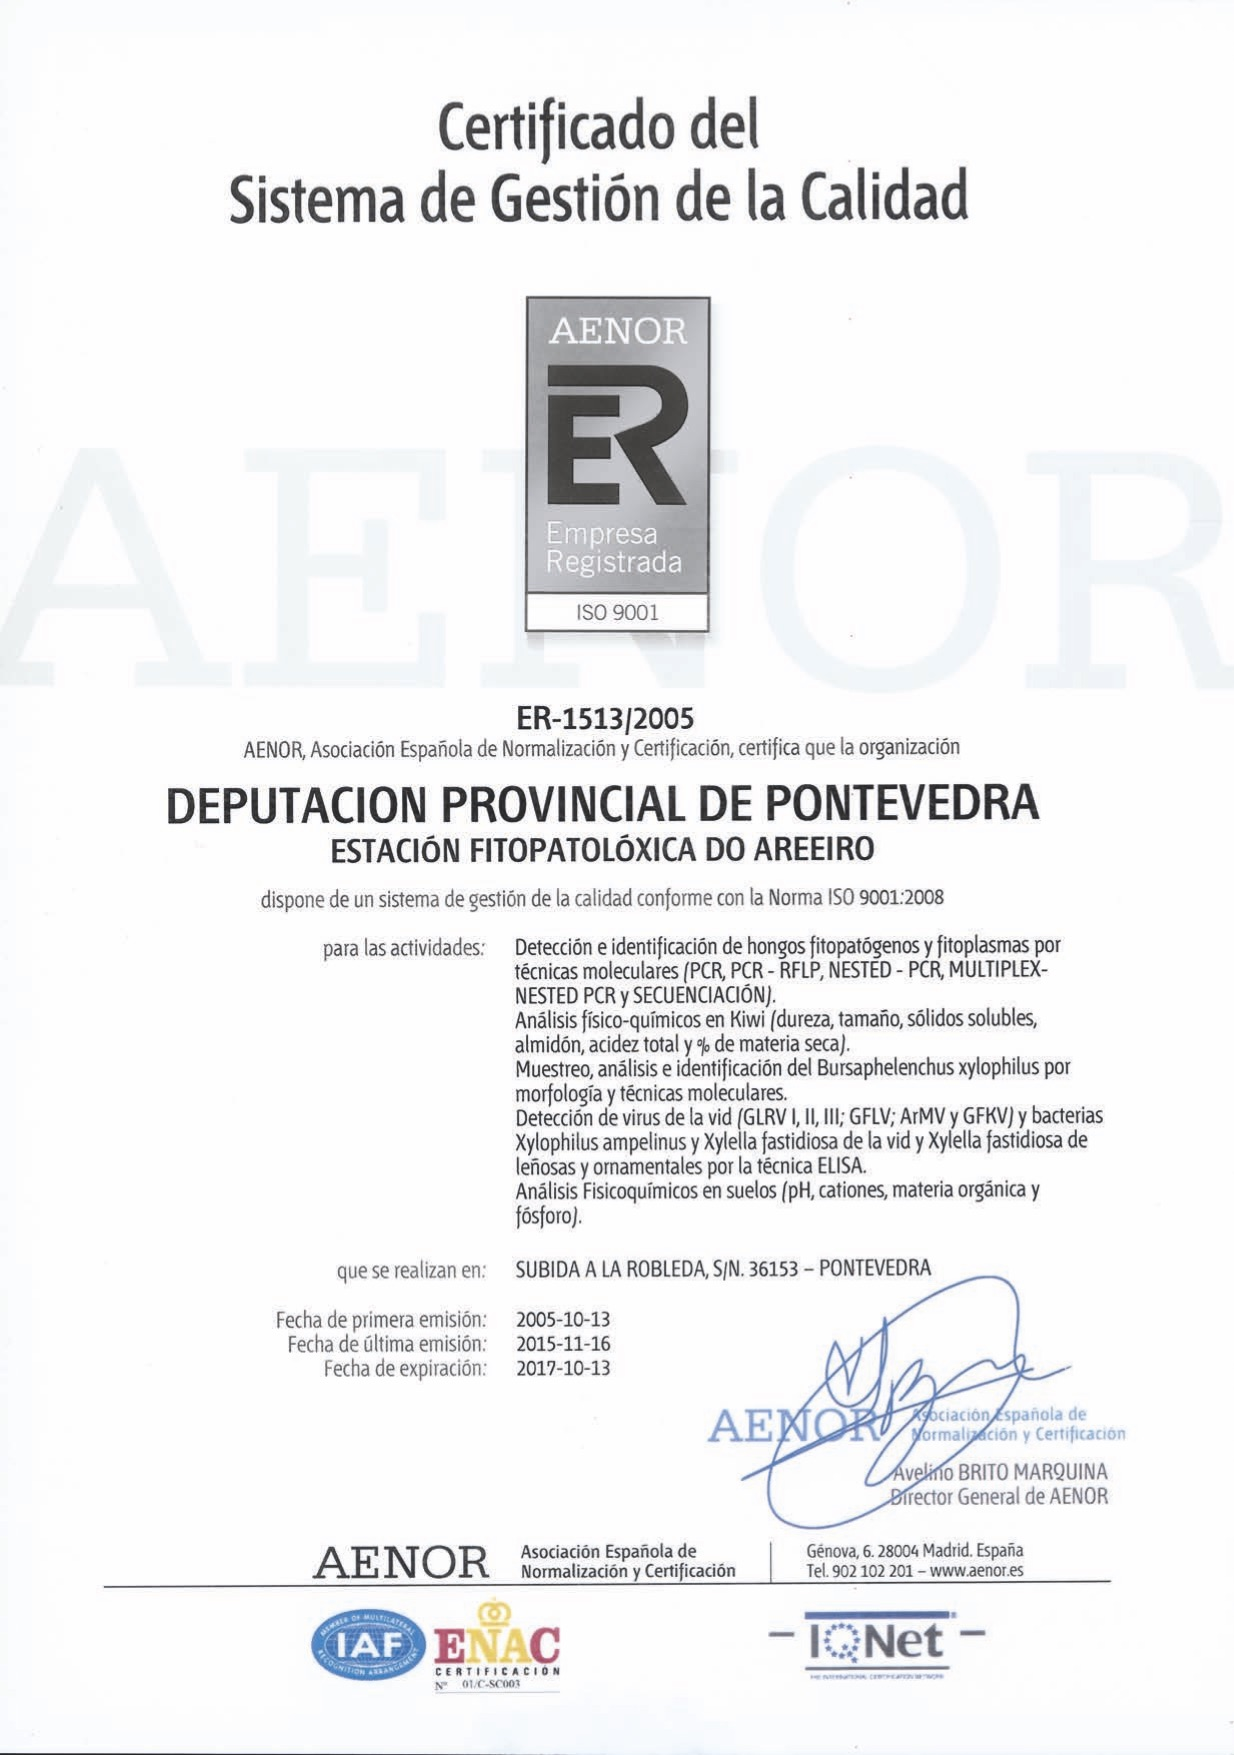 AENOR register certificate